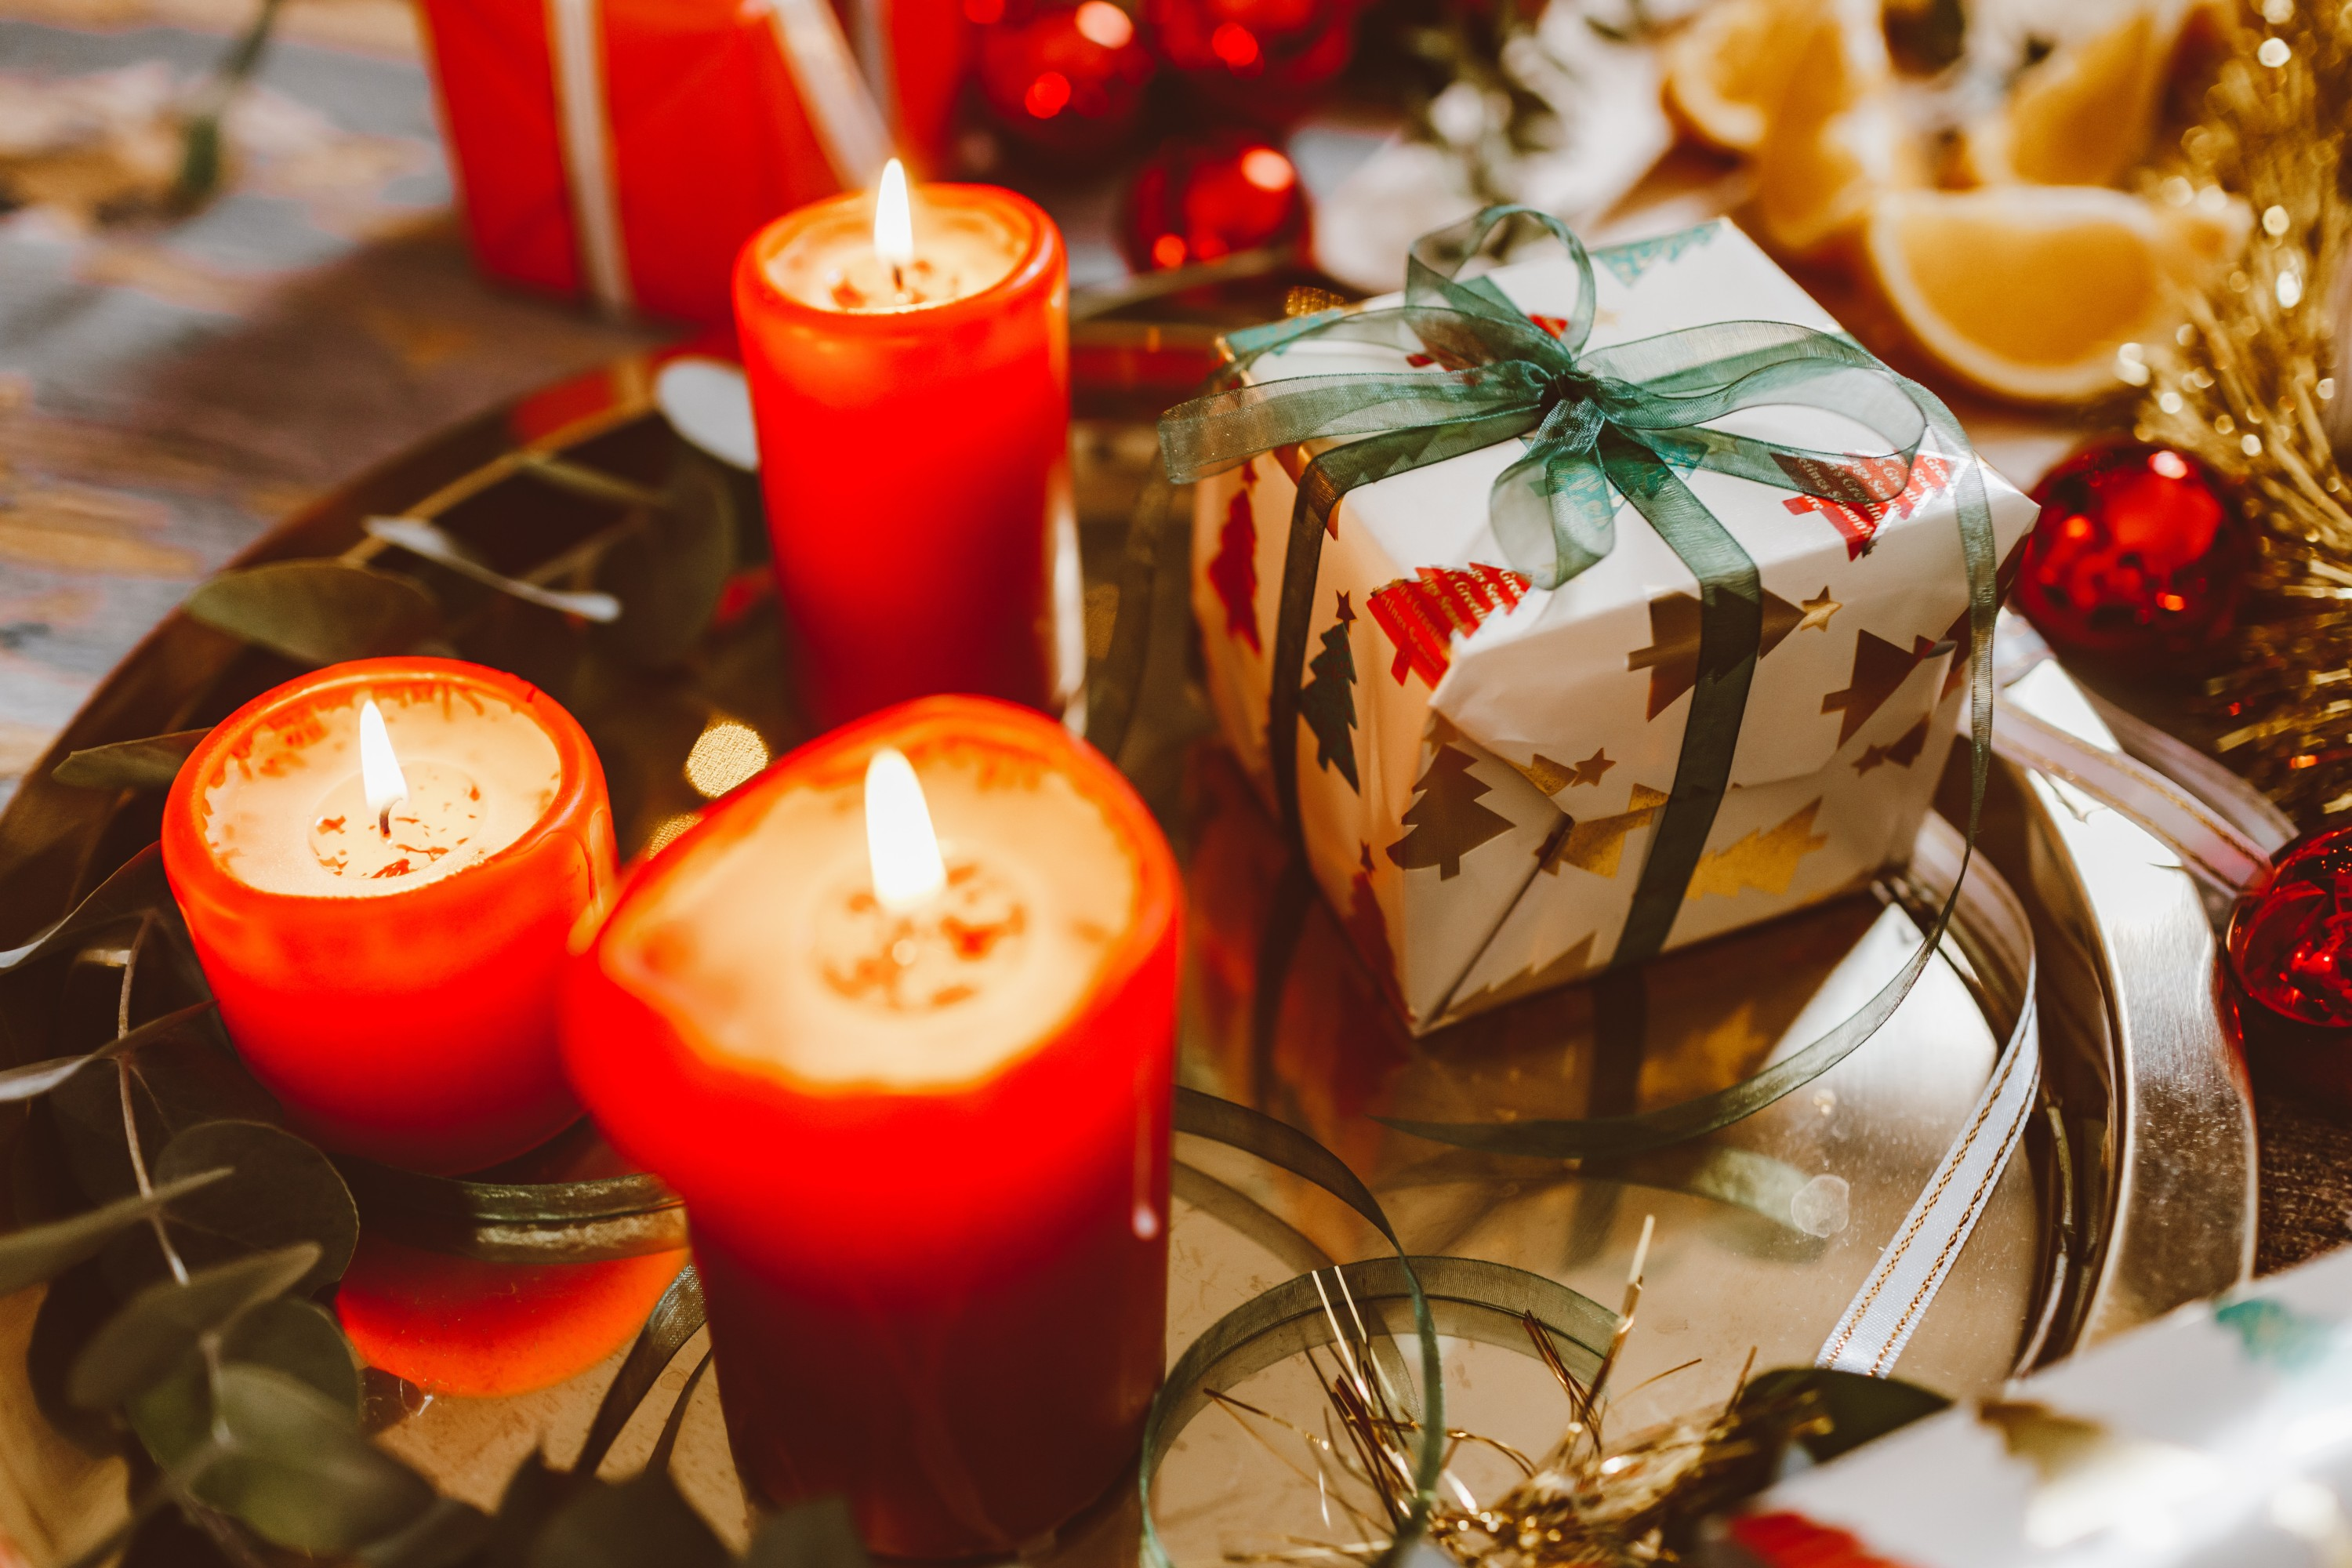 Candles and Christmas presents